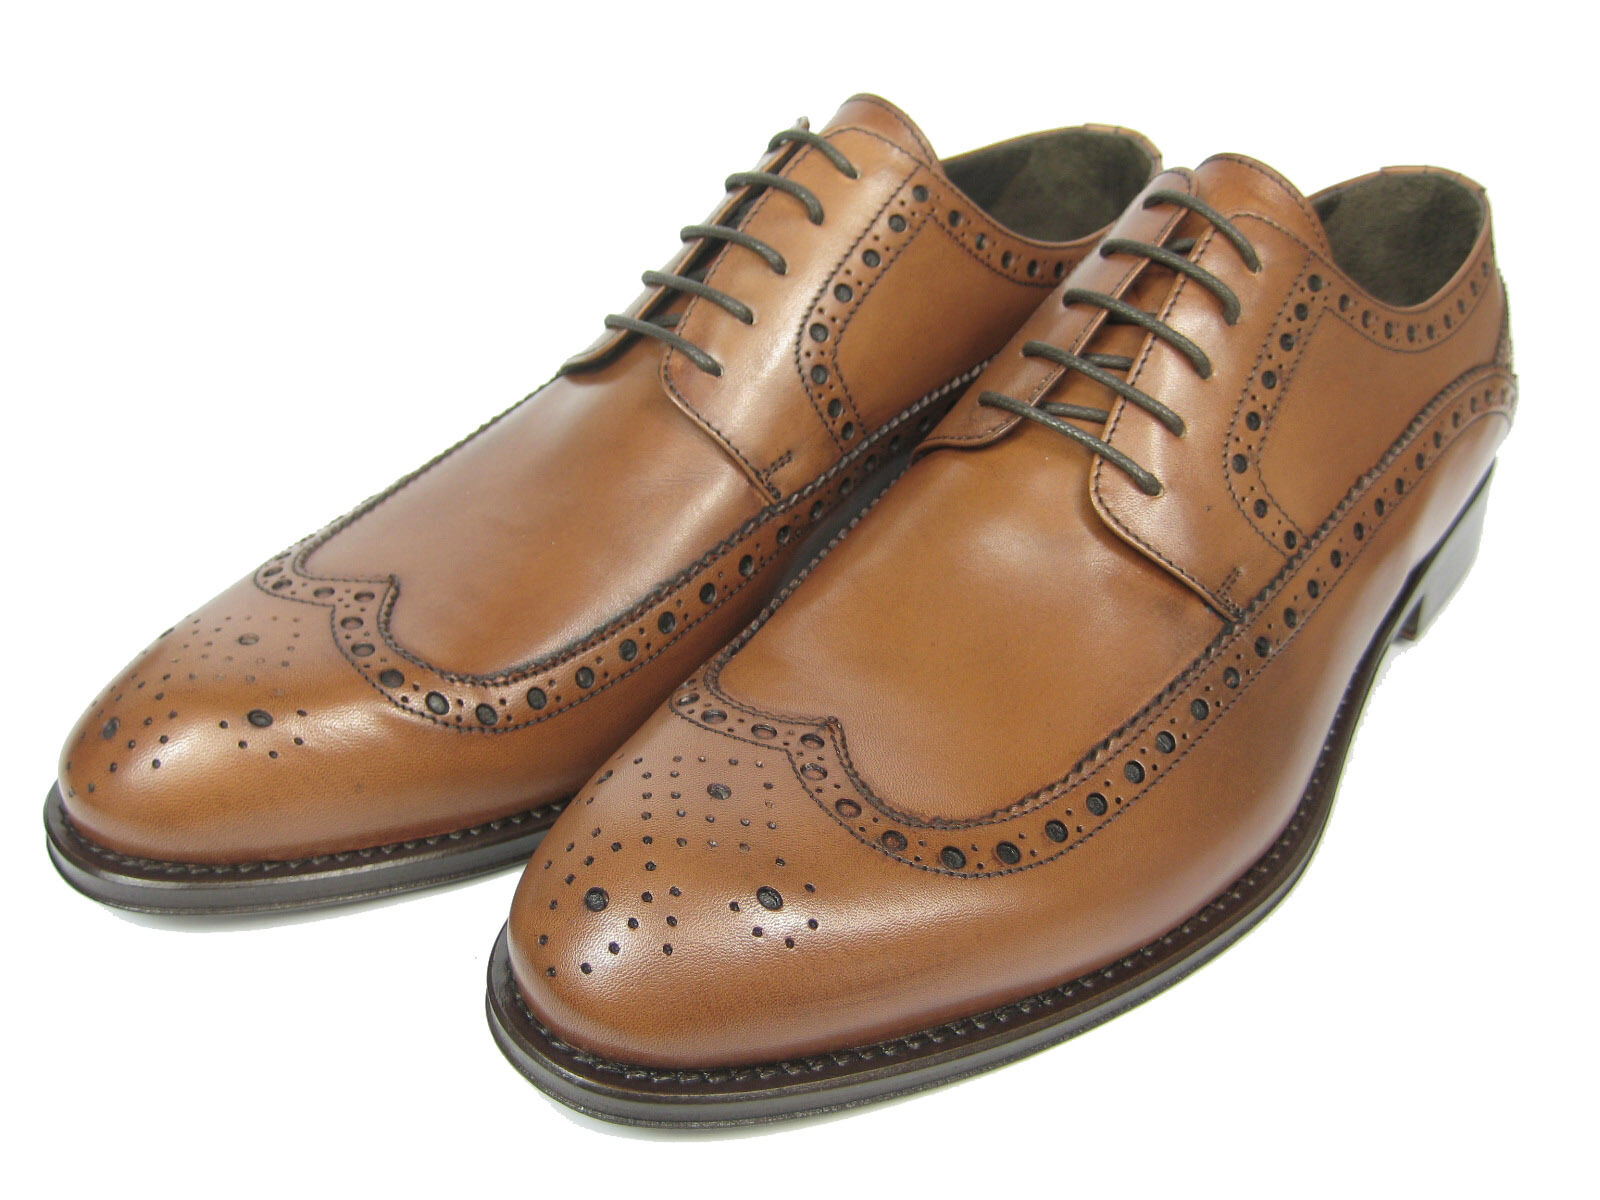 Giorgio shoes Leather shoes S881 Hand Hand Hand Sewed Leather Sole Longwing Whisky Brown 14510e